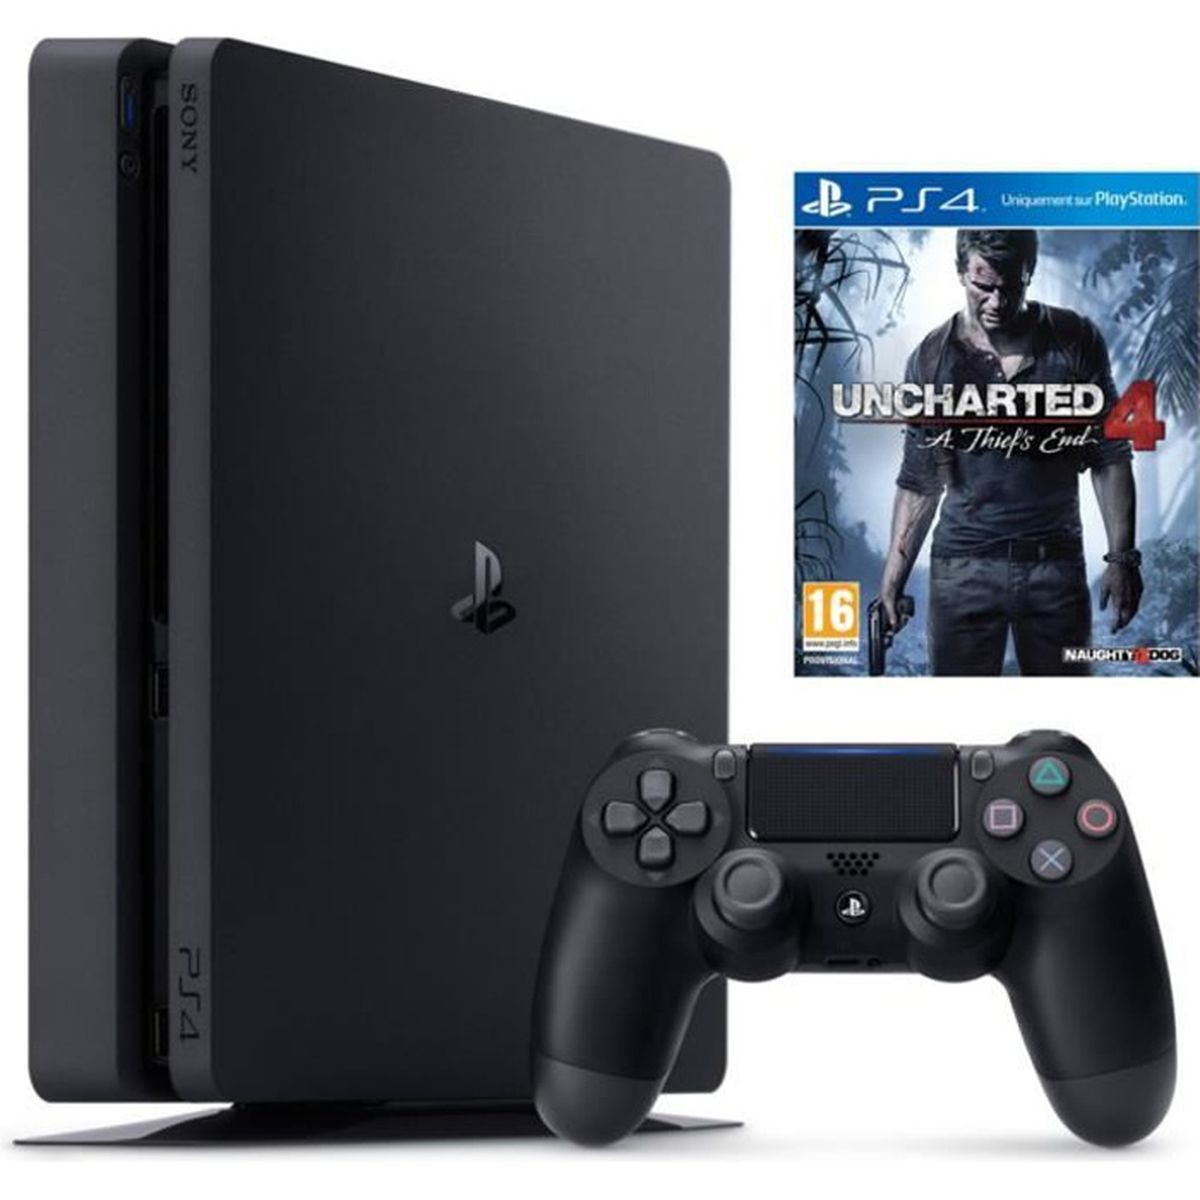 console sony ps4 1to slim uncharted 4 a achat vente console ps4 console sony ps4 1to slim u. Black Bedroom Furniture Sets. Home Design Ideas